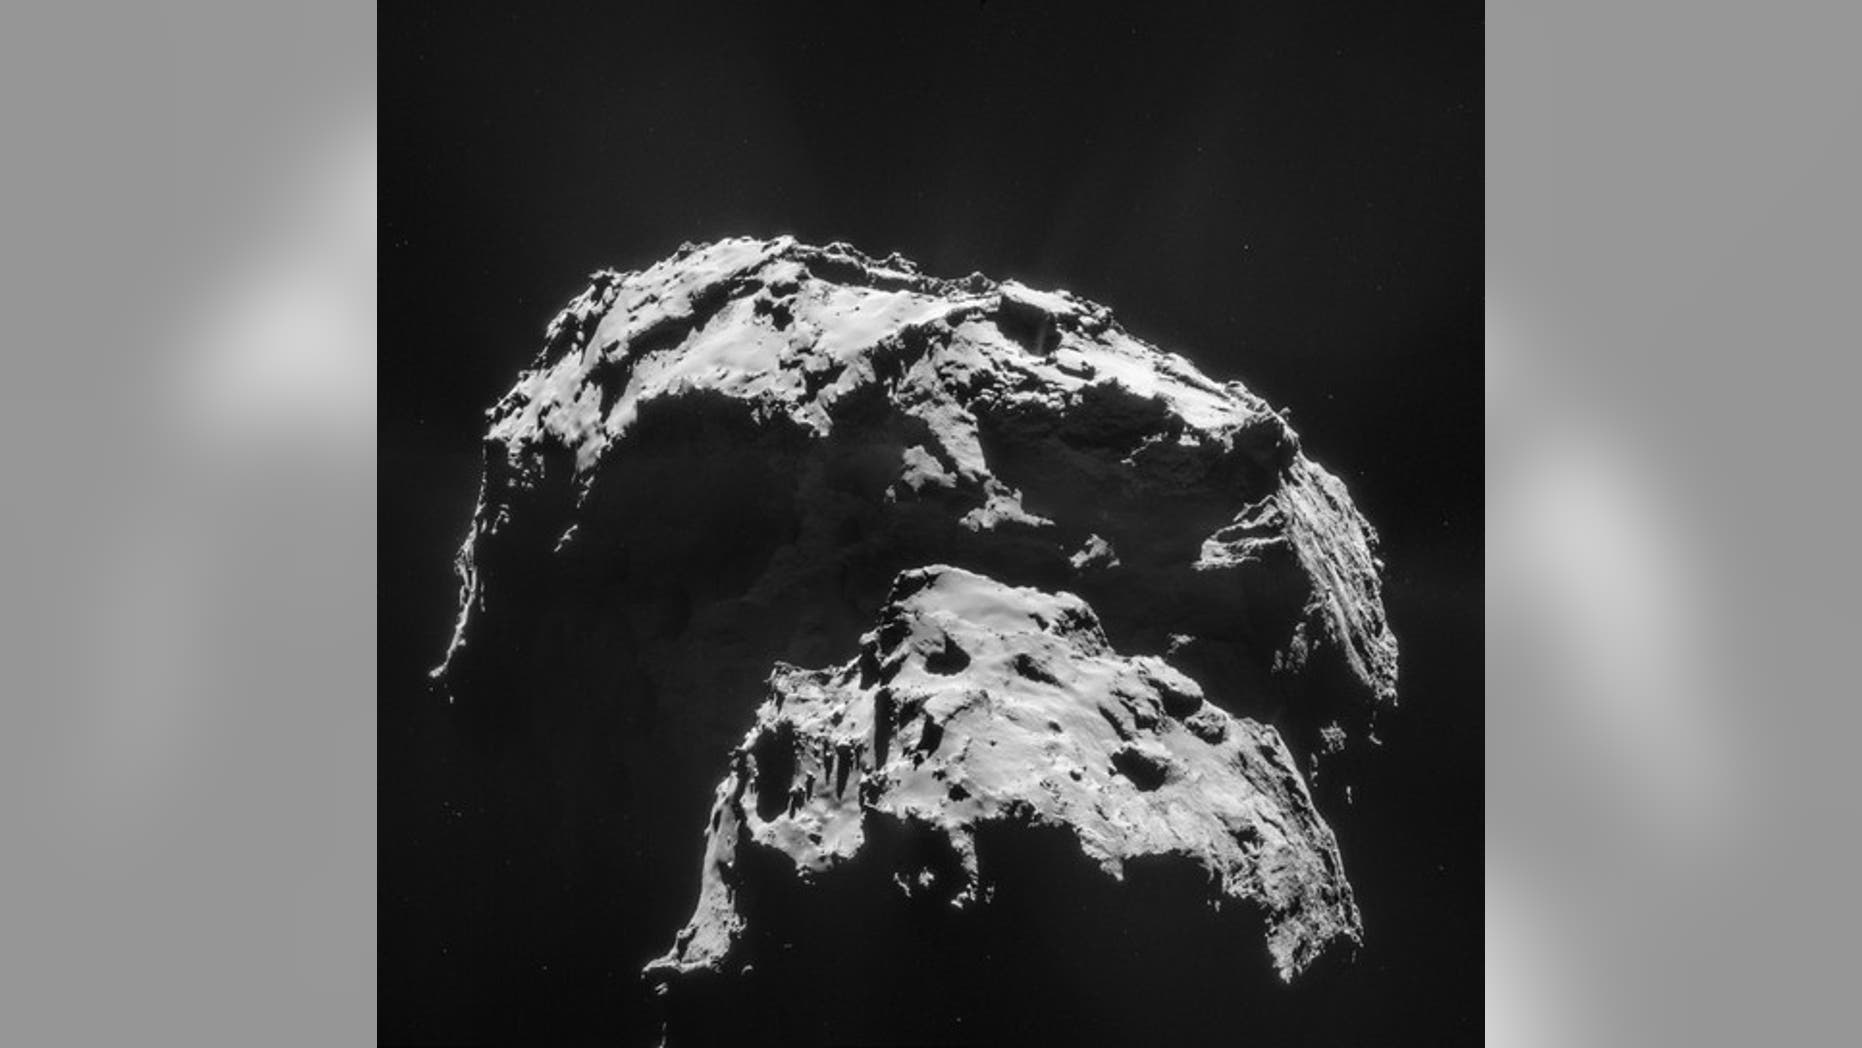 Comet 67P/Churyumov-Gerasimenko is seen here in an image captured by the Rosetta spacecraft. The mission's Philae lander hit the surface with a big bounce, demonstrating that the comet's surface is hard.